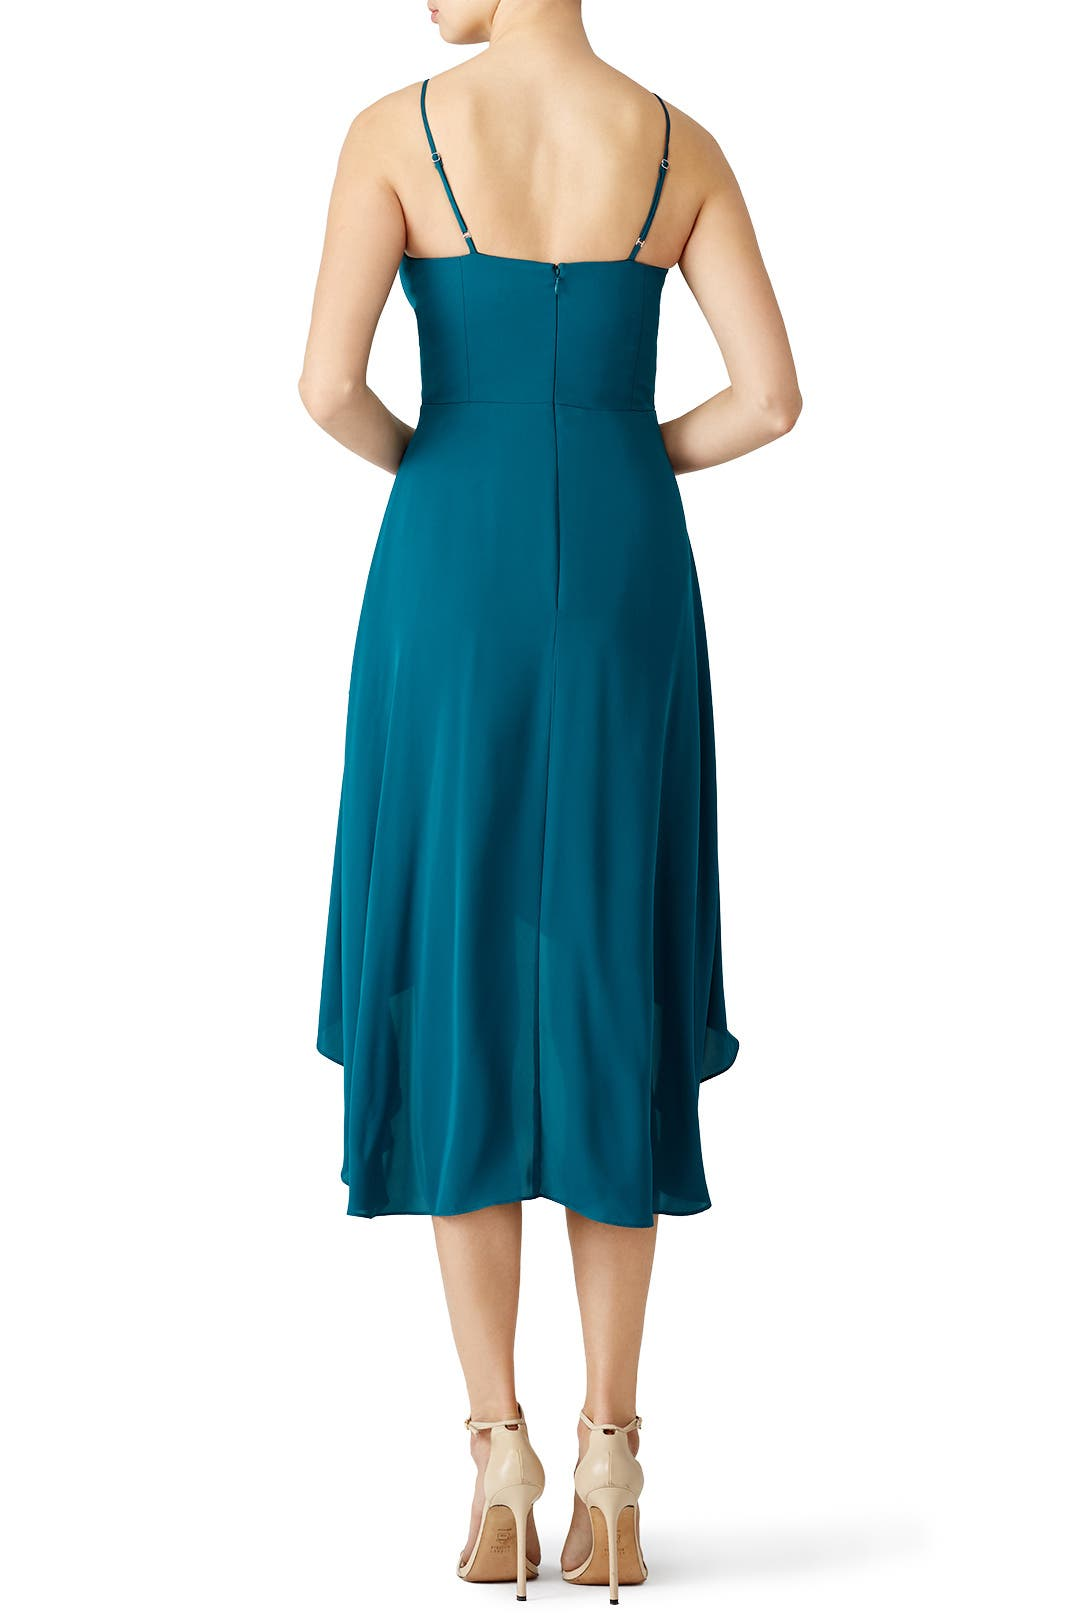 Teal High Low Dress by Amanda Uprichard for $50 | Rent the Runway